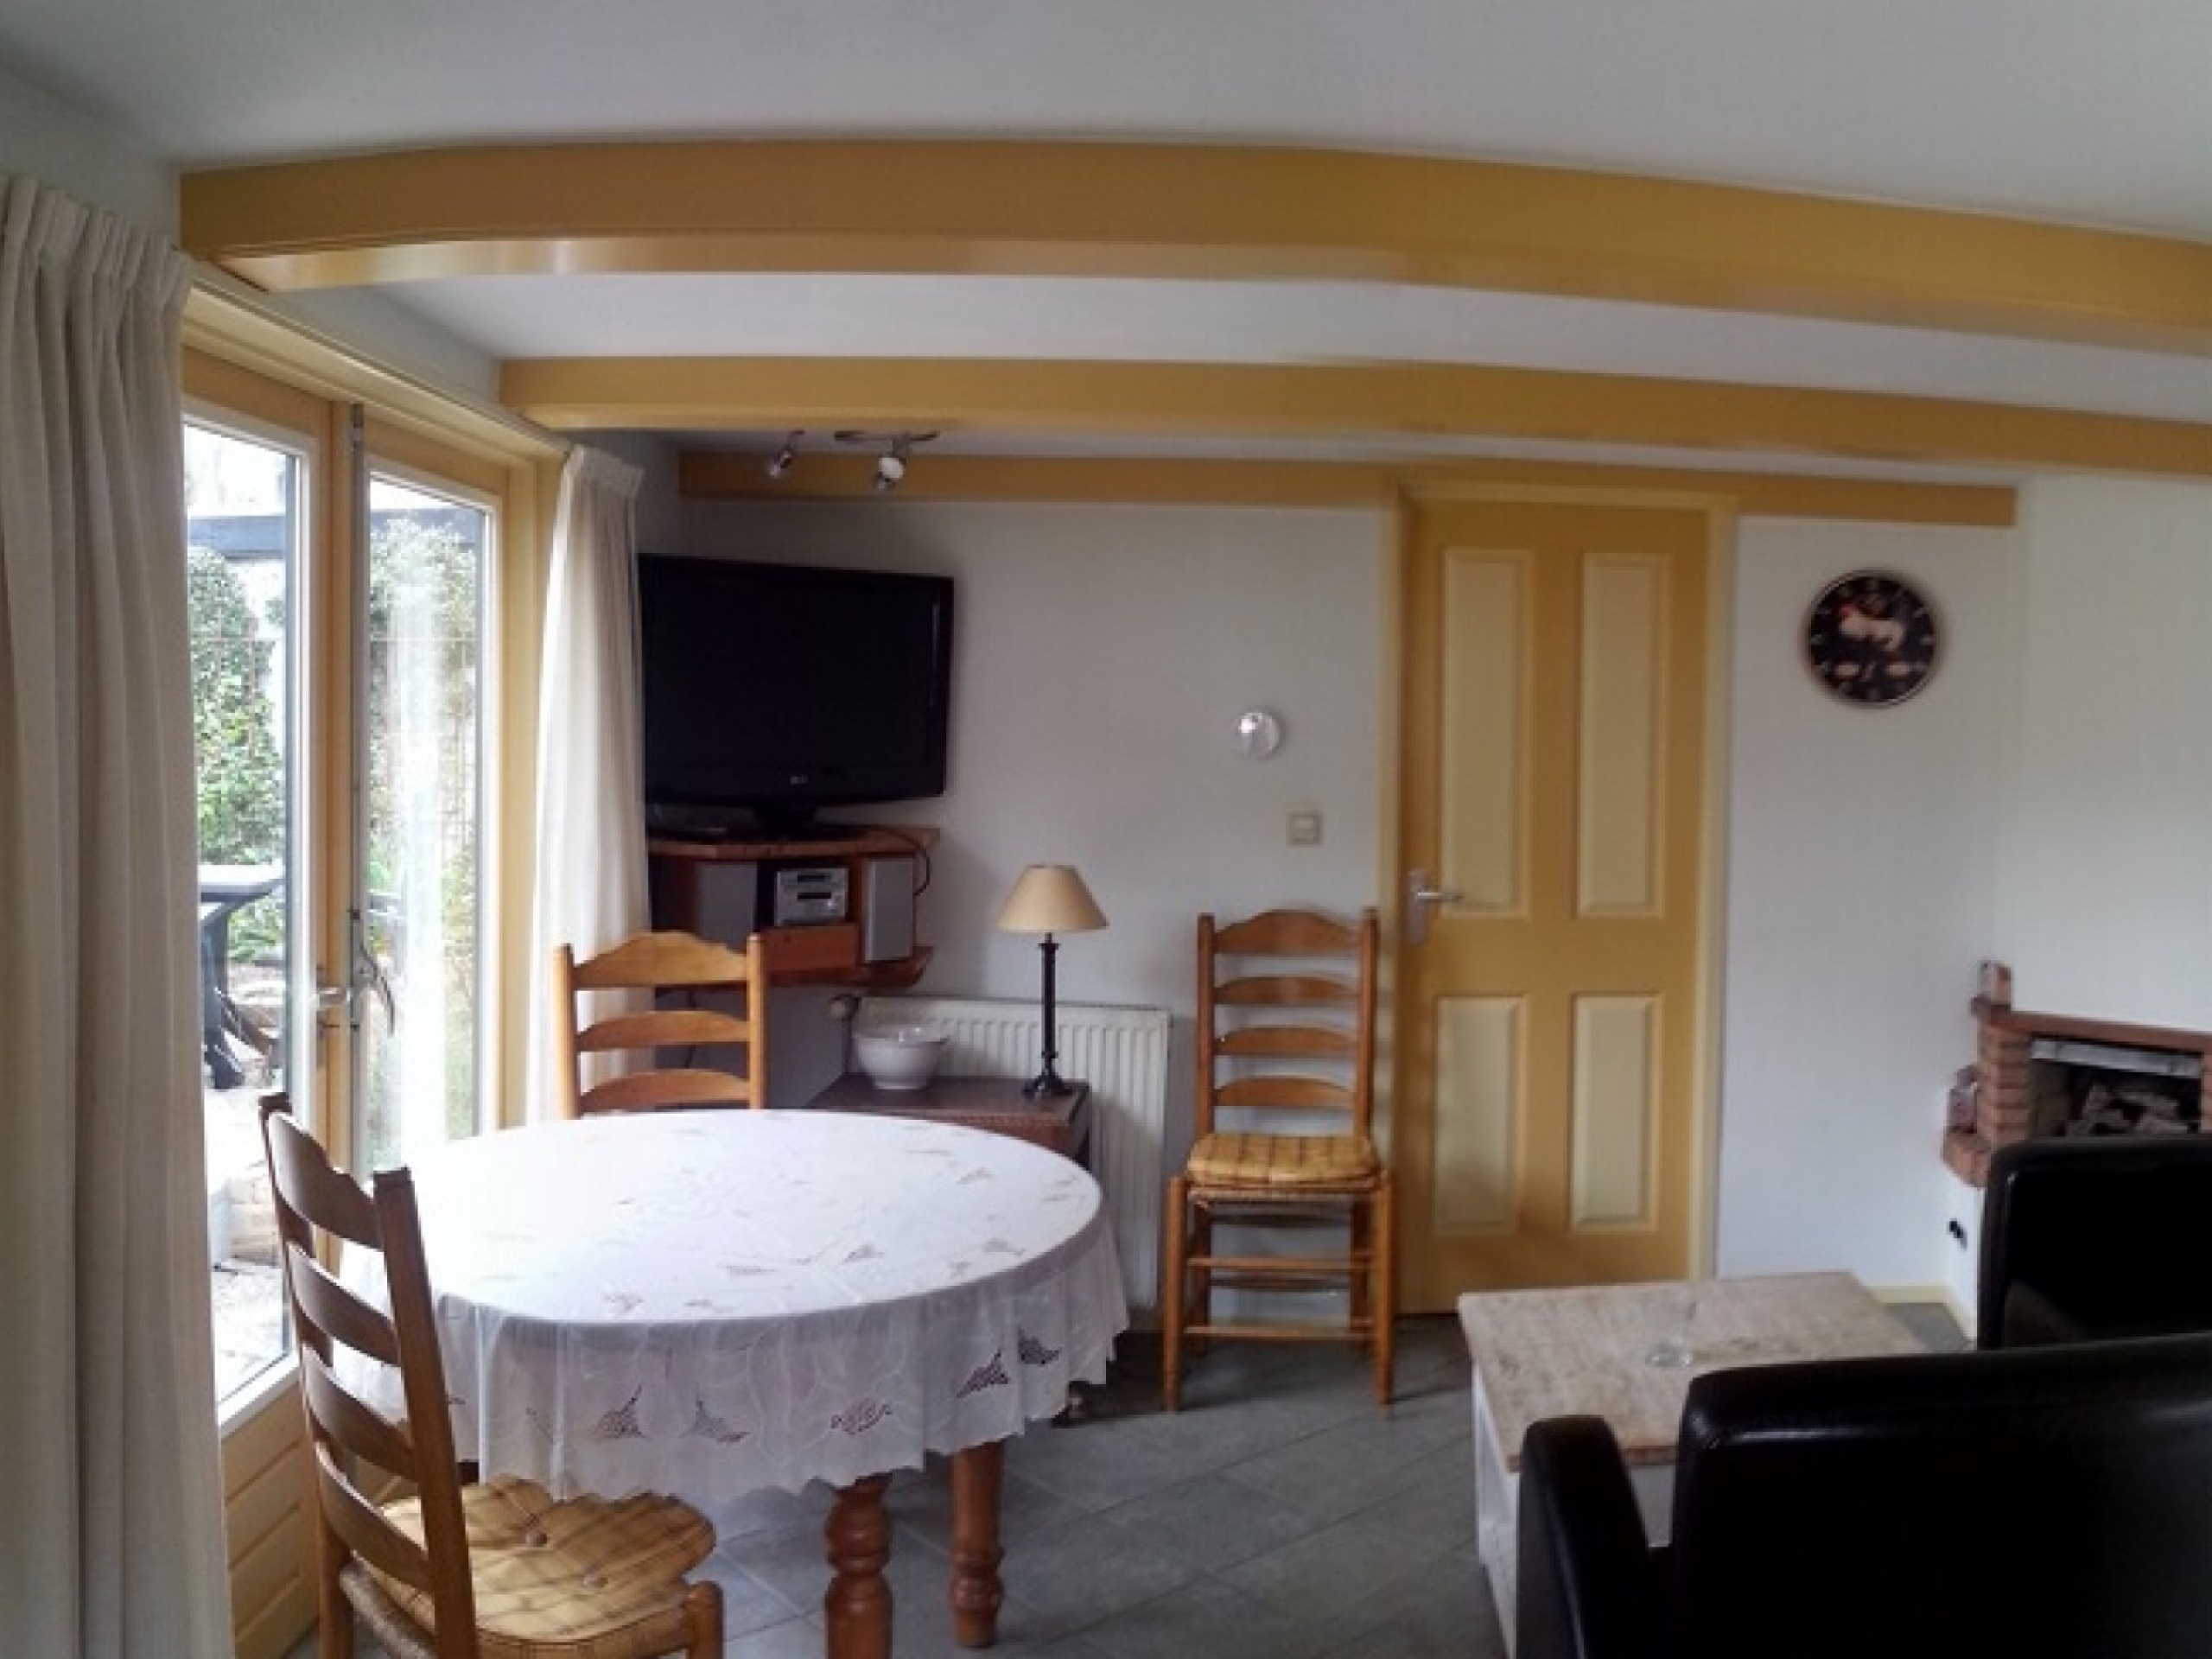 Compact house in Den Burg with great feel and lovely rose garden